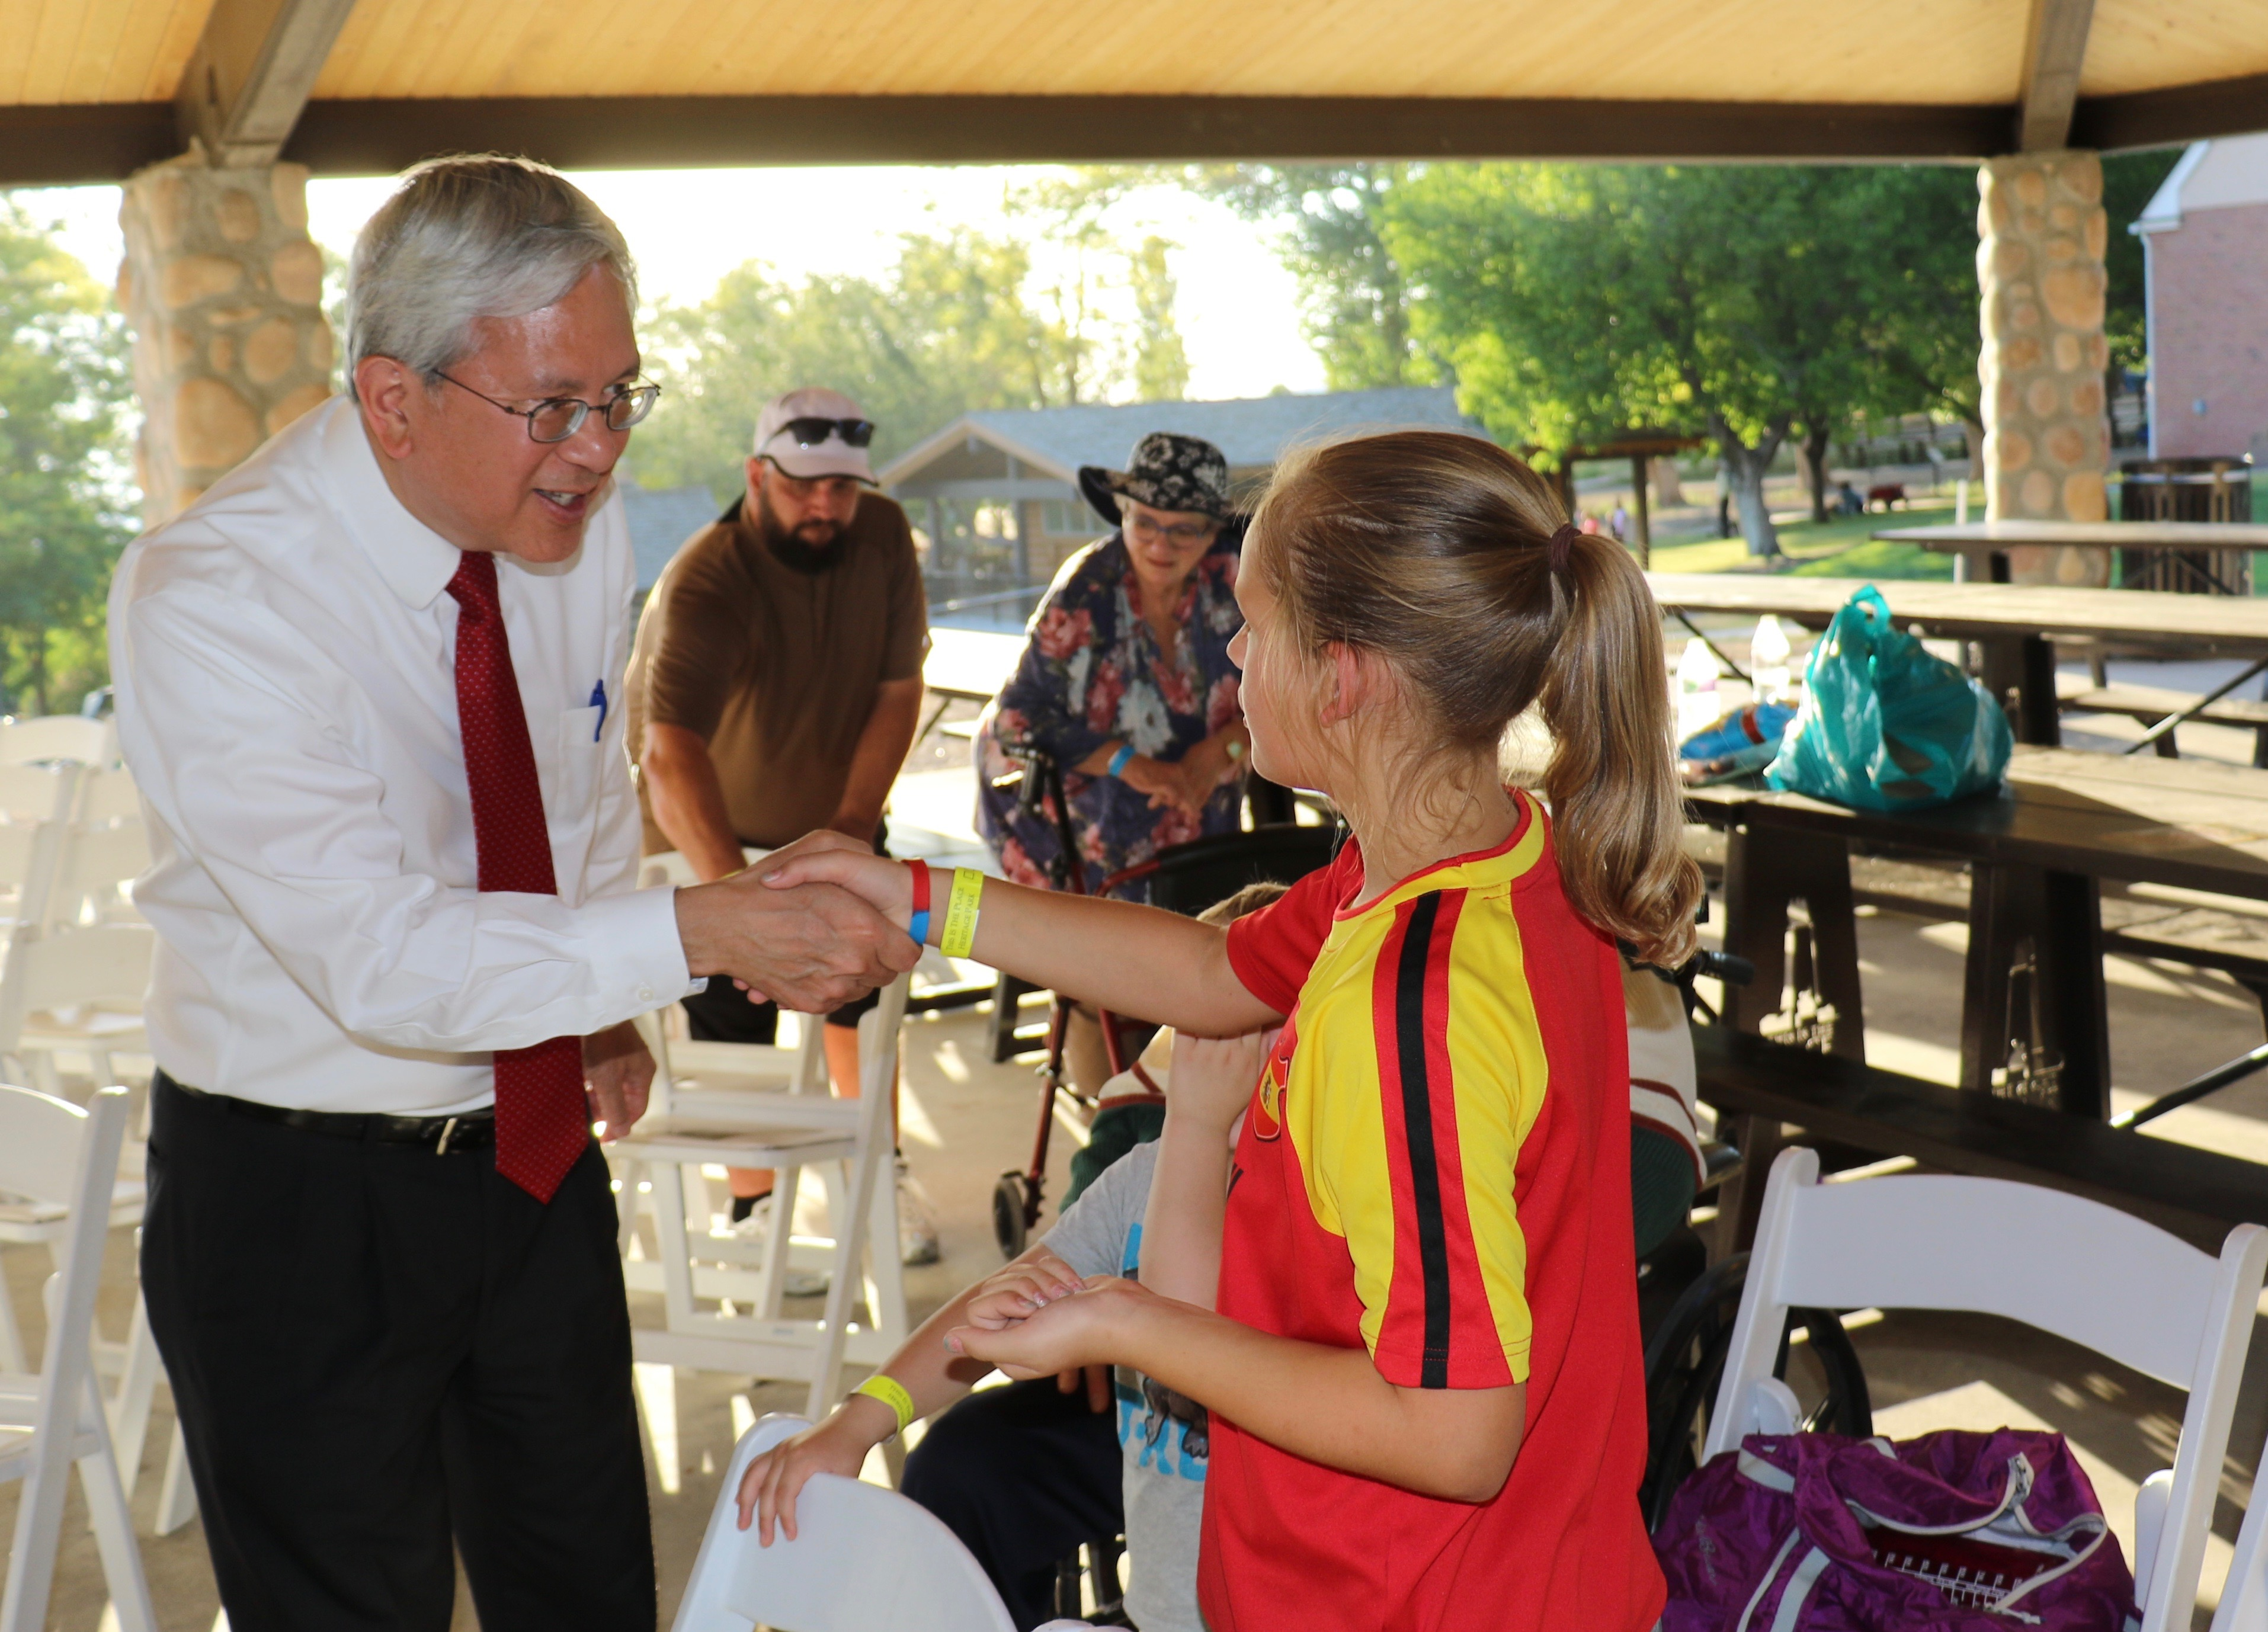 Elder Gerrit W. Gong introduces himself to 10-year-old Miriam Hurd prior to the July 16, 2018, devotional at This Is the Place Heritage Park.